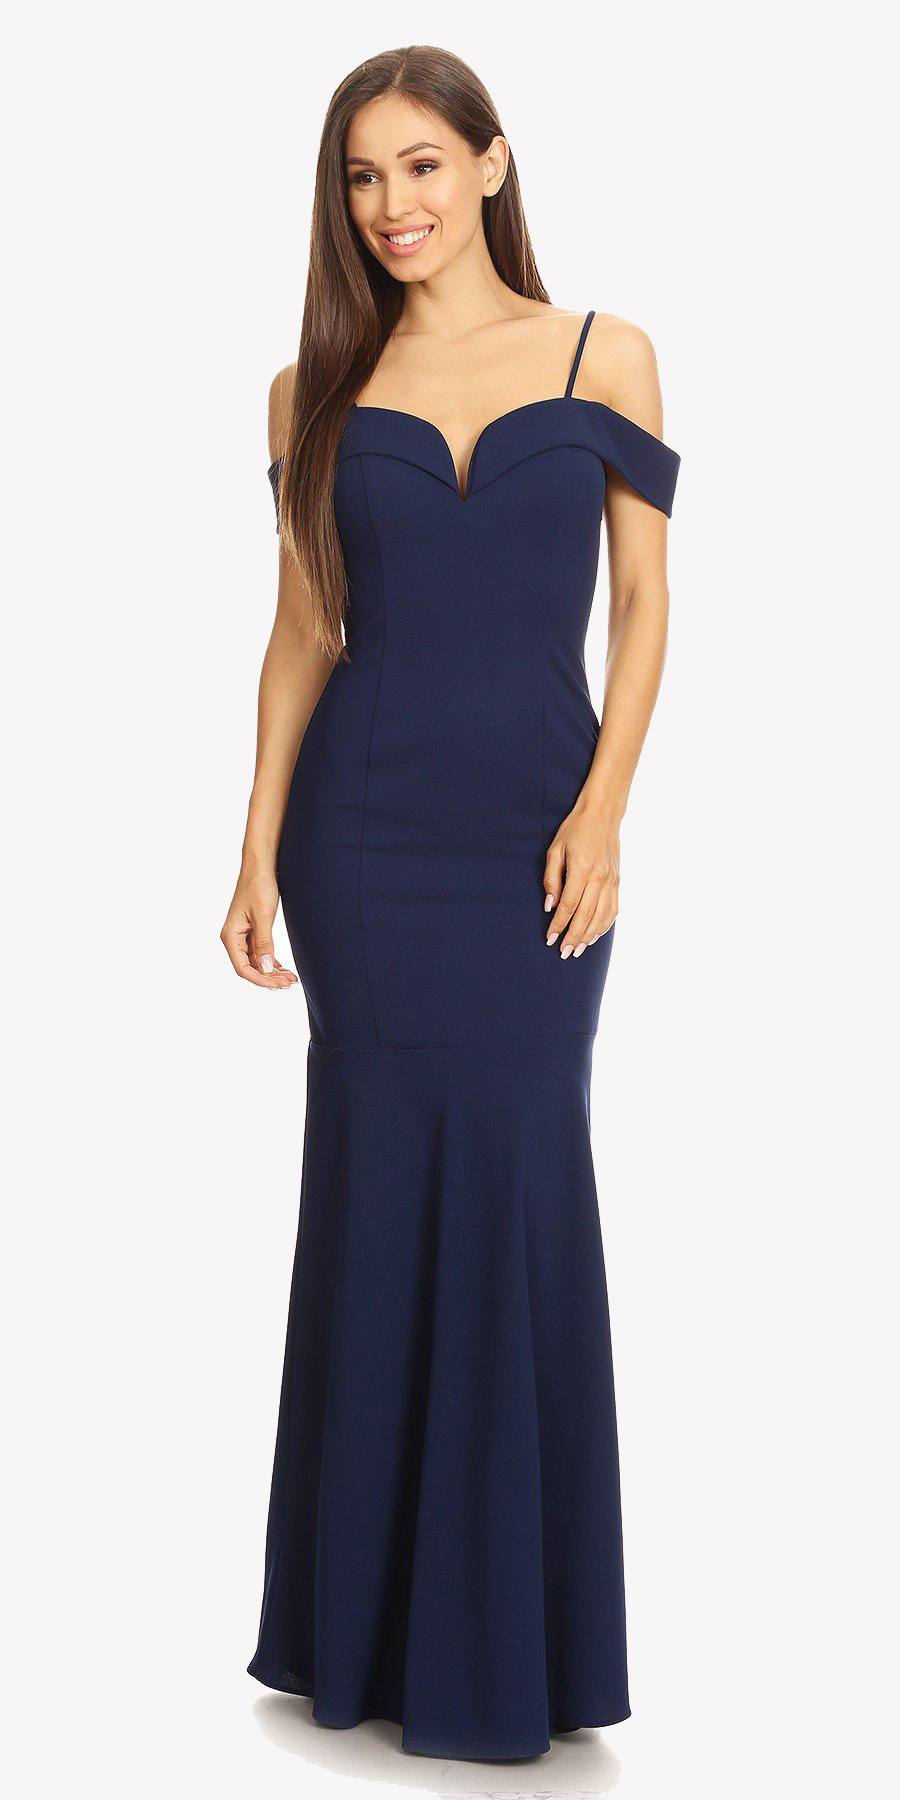 a6cce3fed313 ... Navy Off Shoulder Mermaid Style Evening Gown with Sweetheart Neckline  ...